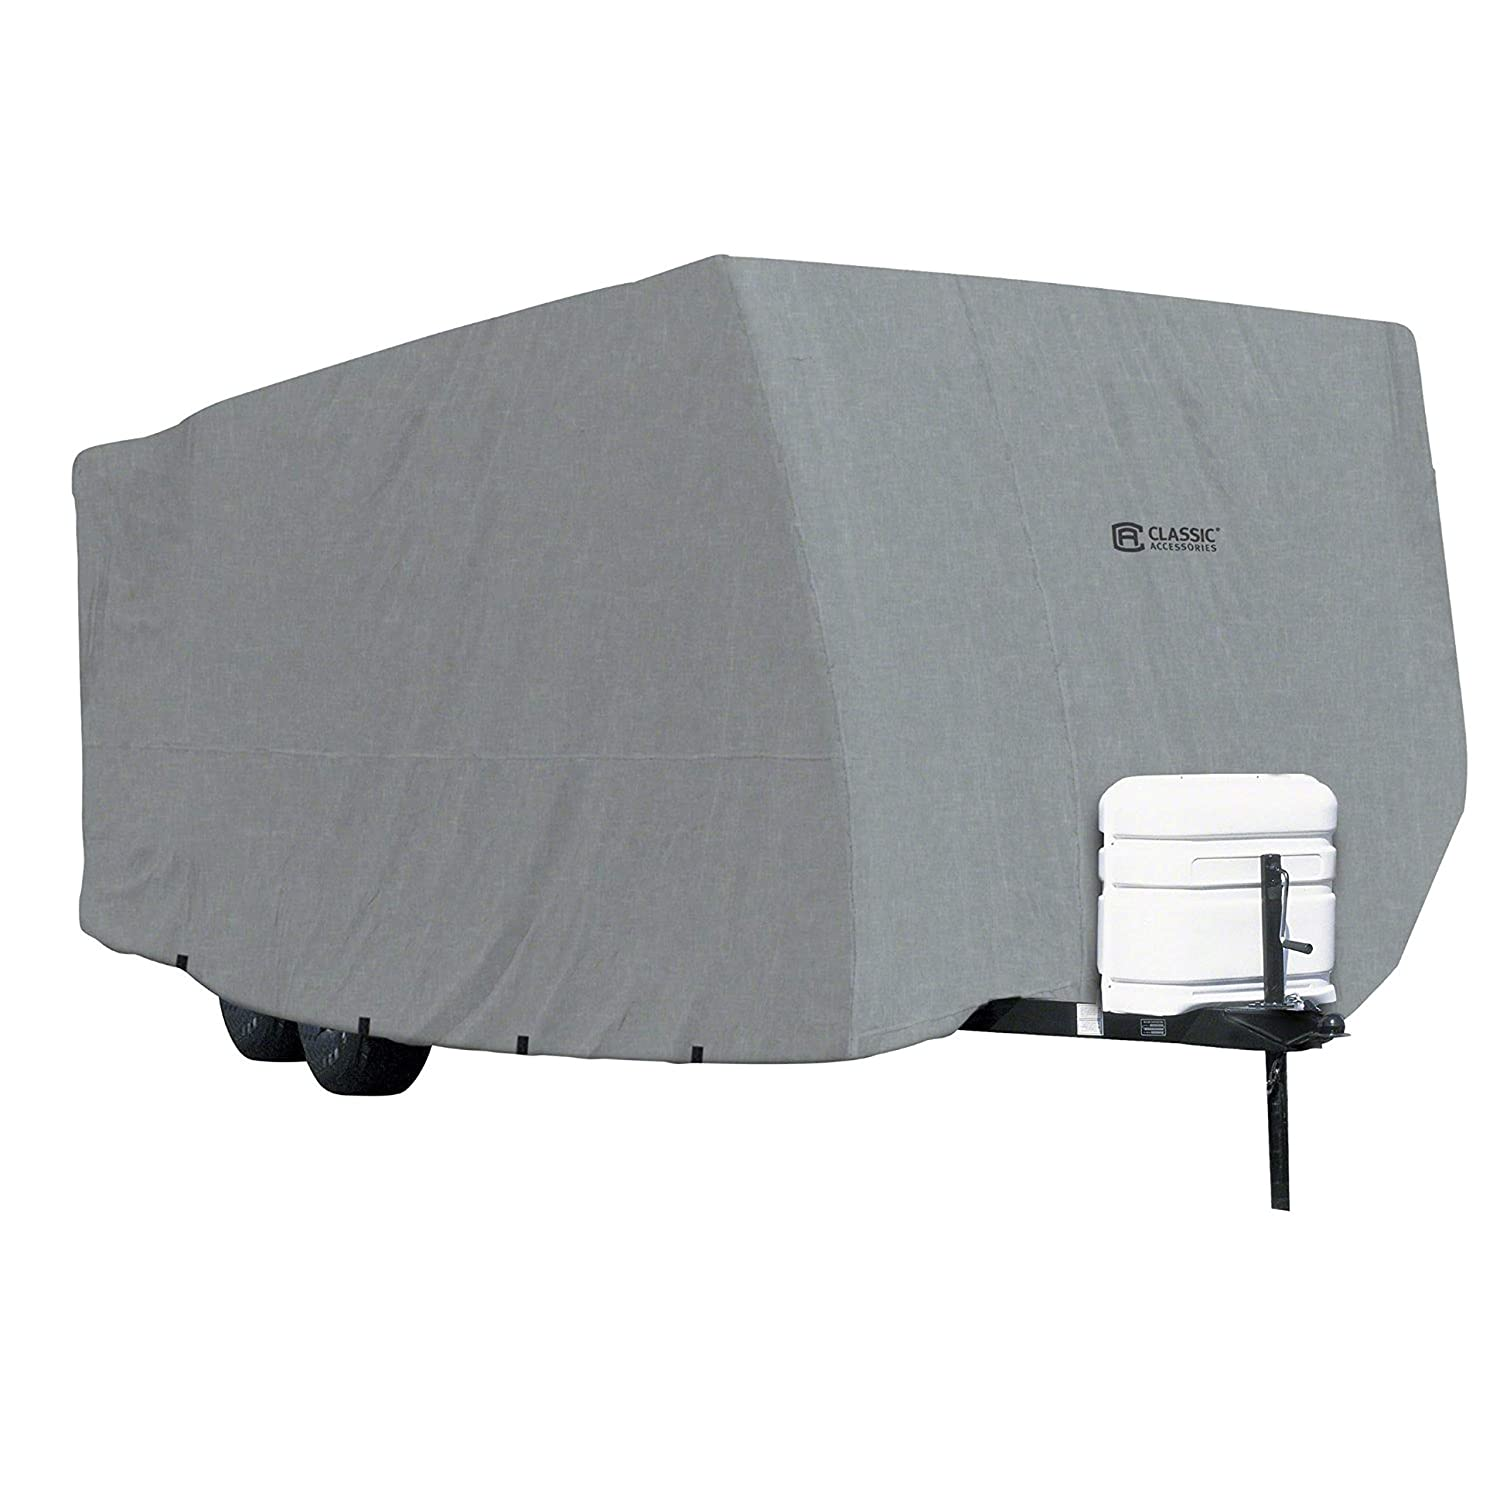 Classic Accessories OverDrive PolyPro 1 Cover for 33 to 35 Travel Trailers